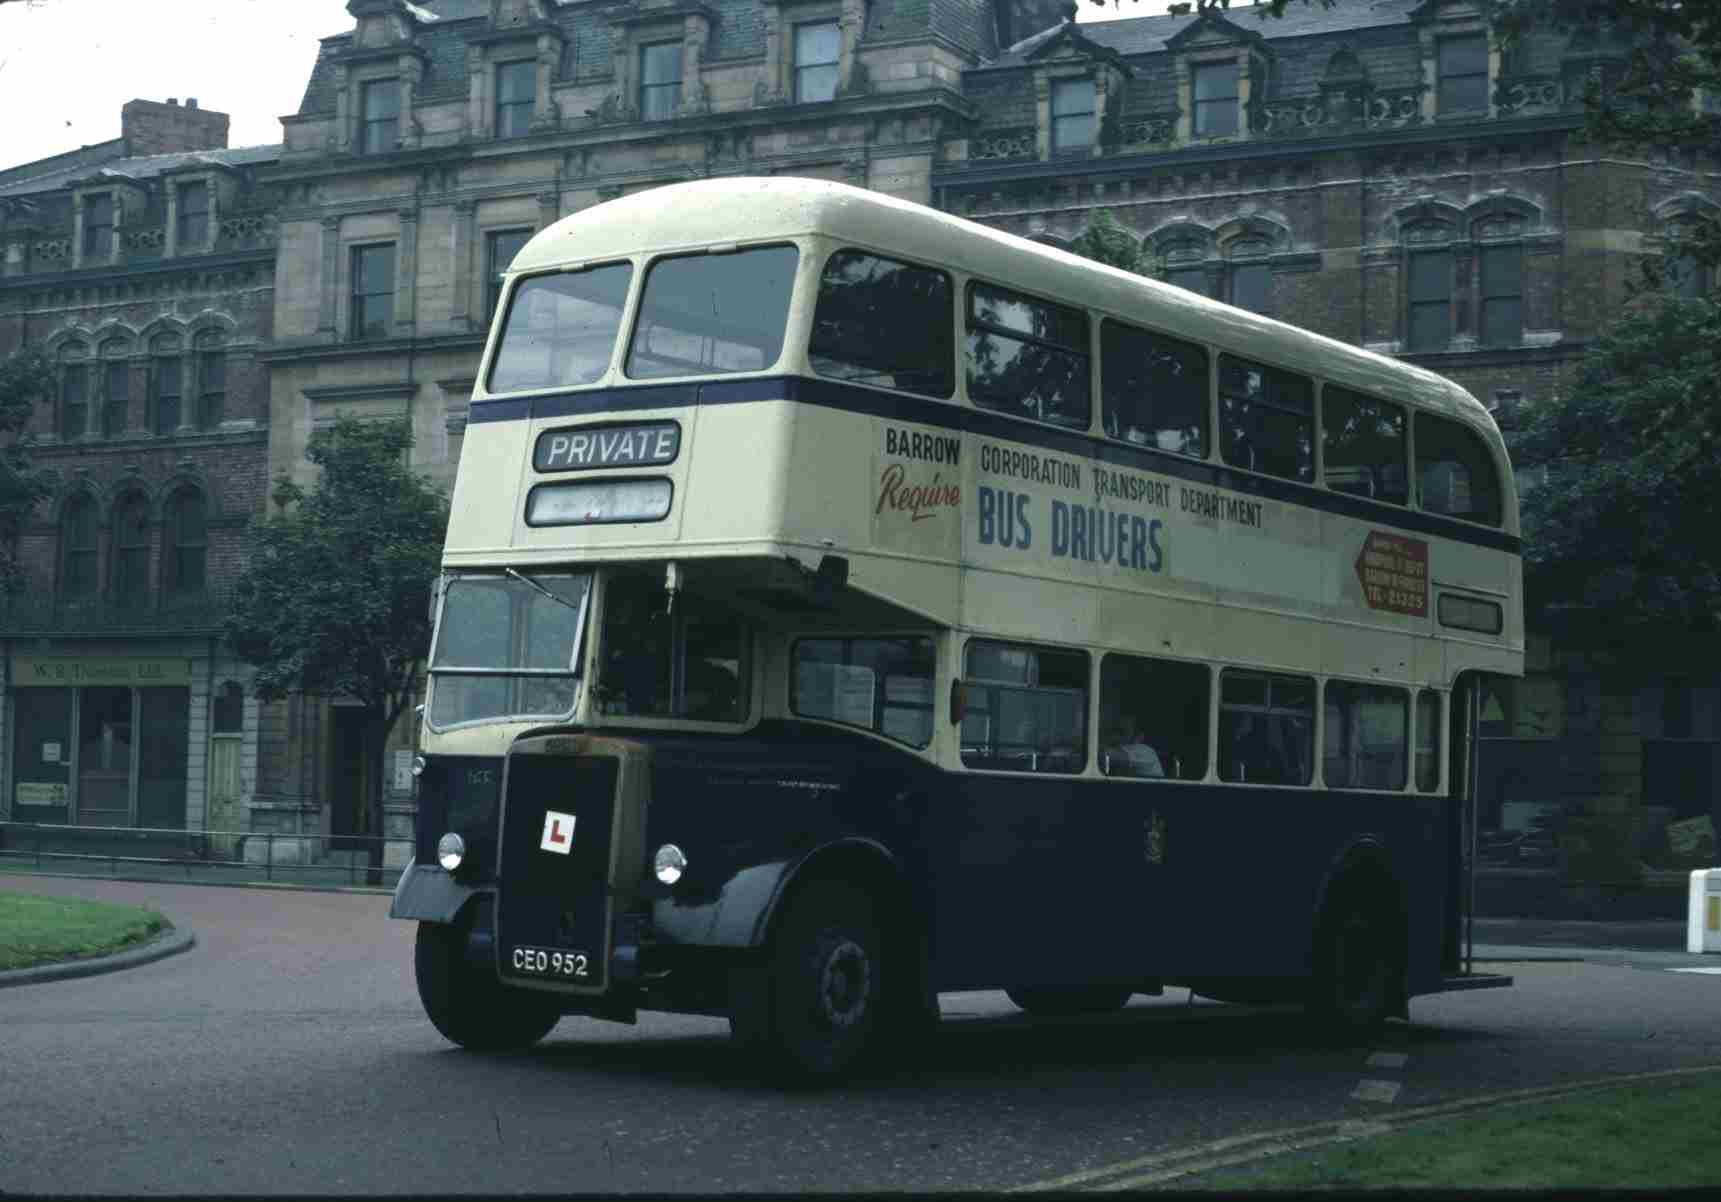 Ceo952 Double Decker Used As A Training Bus With L Plates